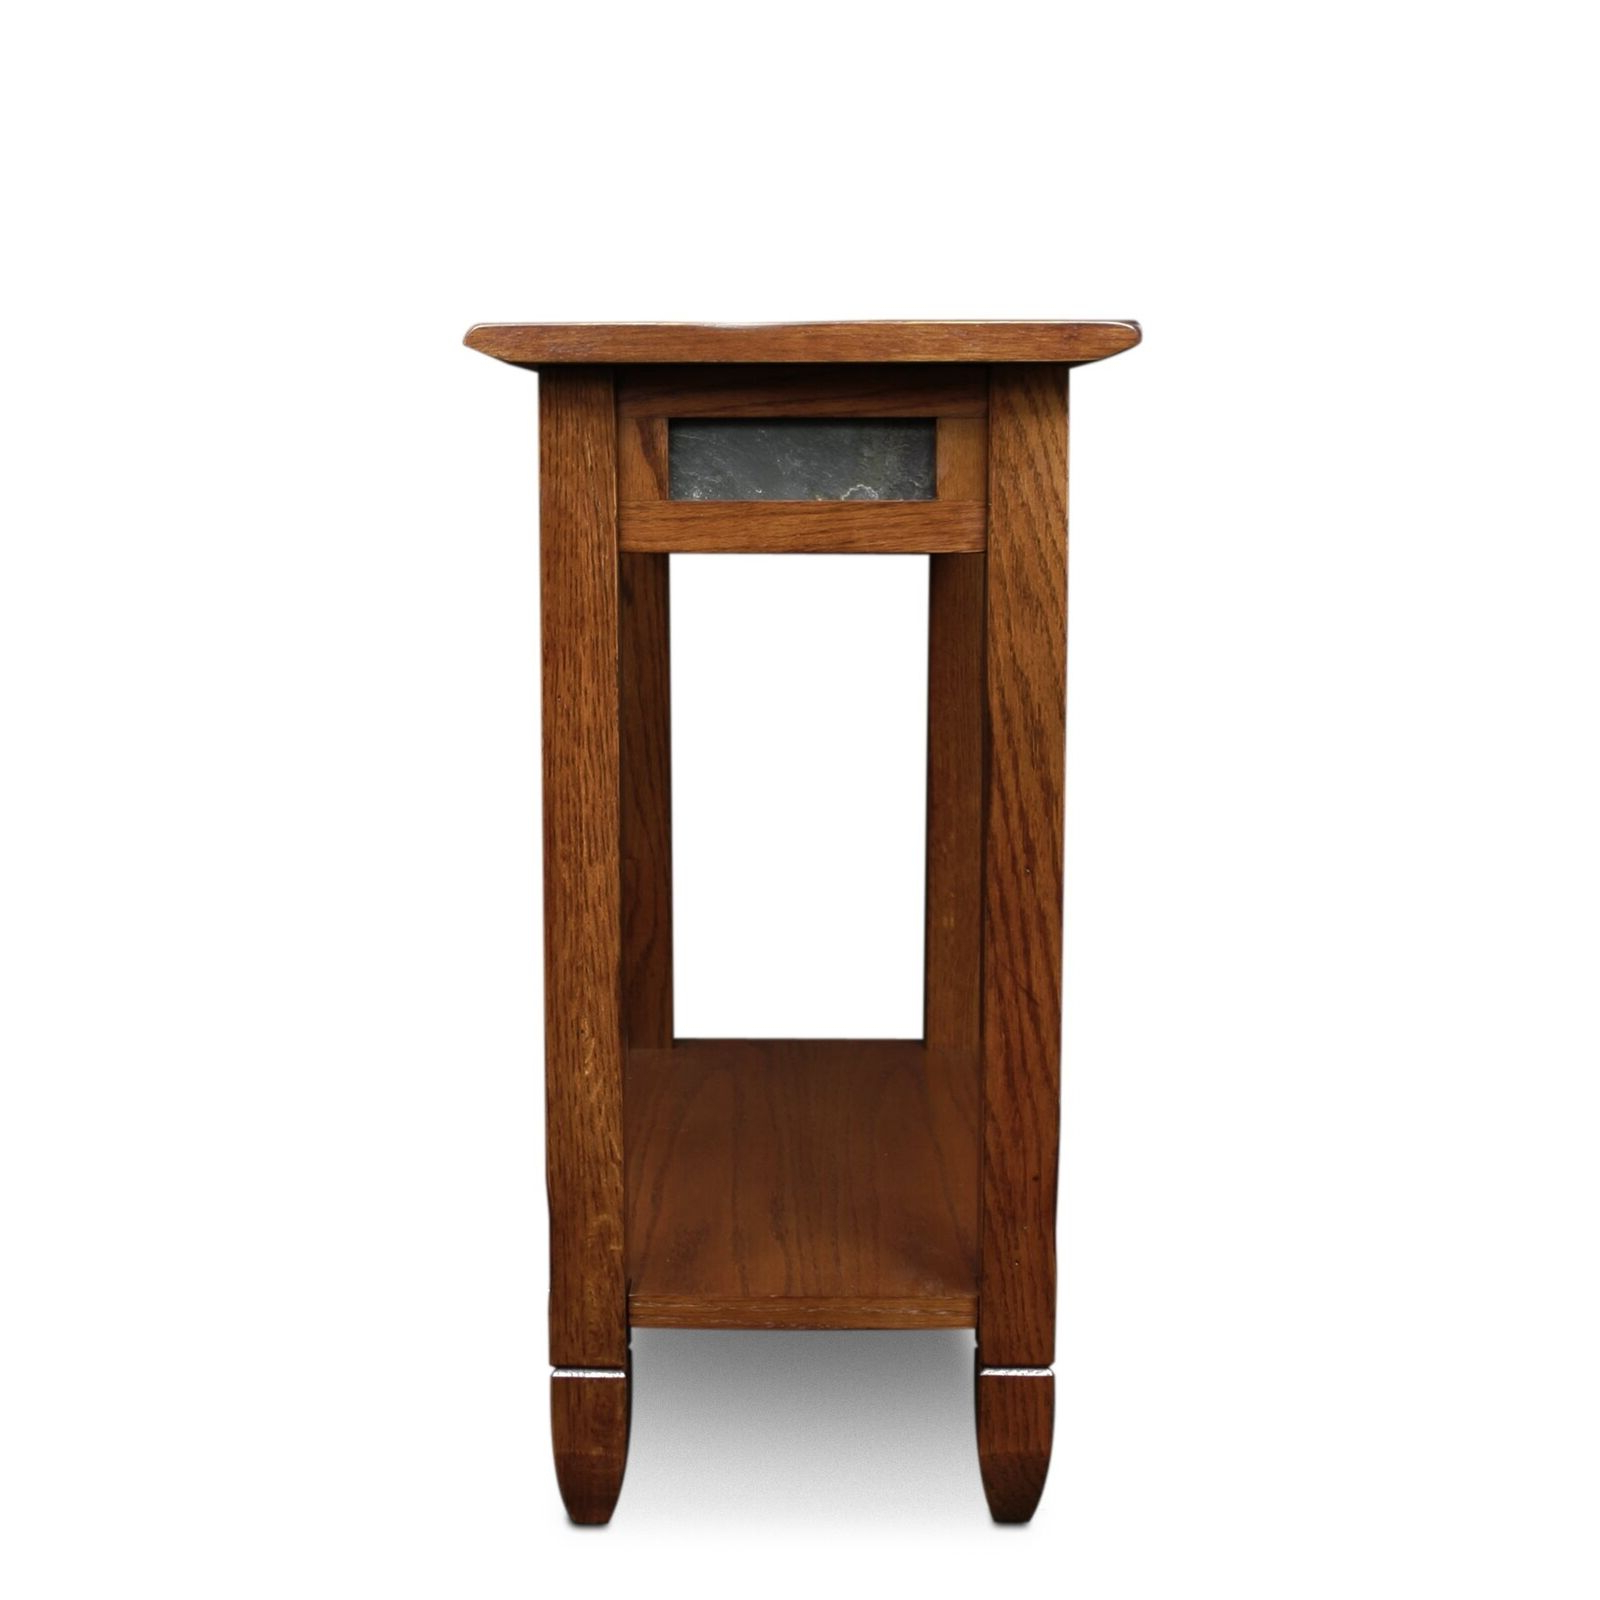 Latest Copper Grove Ixia Rustic Oak And Slate Tile Coffee Tables Pertaining To Leick 10060 Rustic Oak Chairside End Table (View 11 of 20)